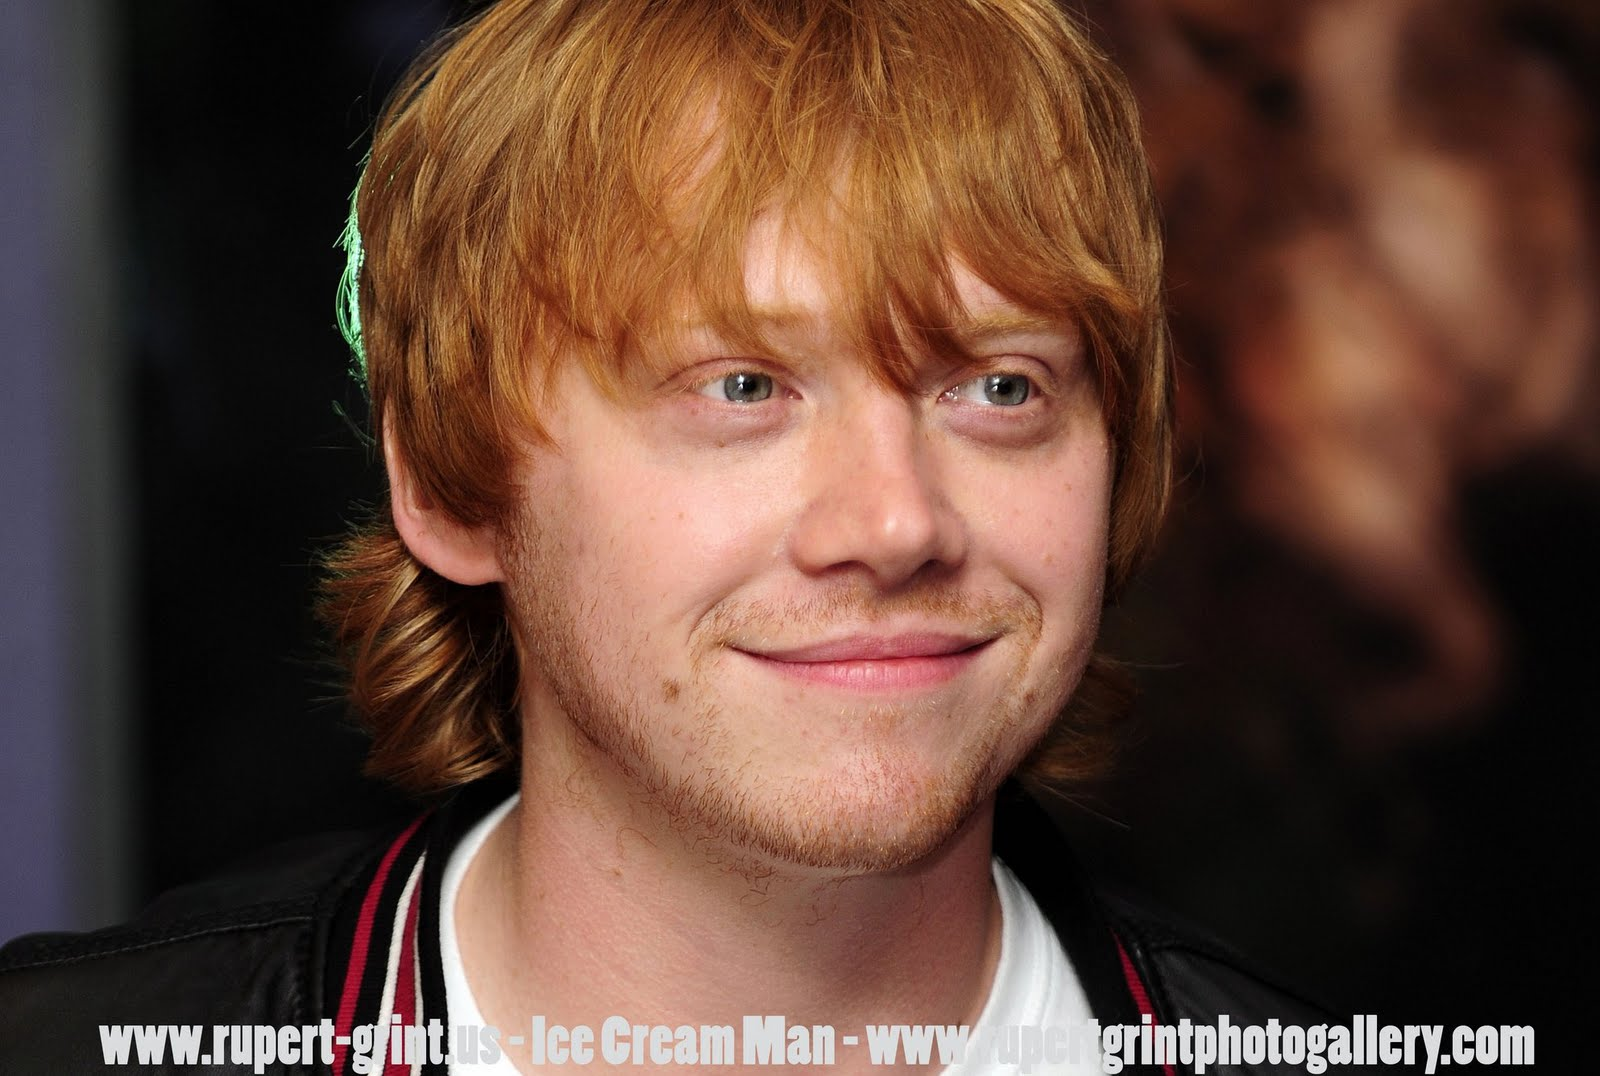 Rupert Grint - Wallpapers